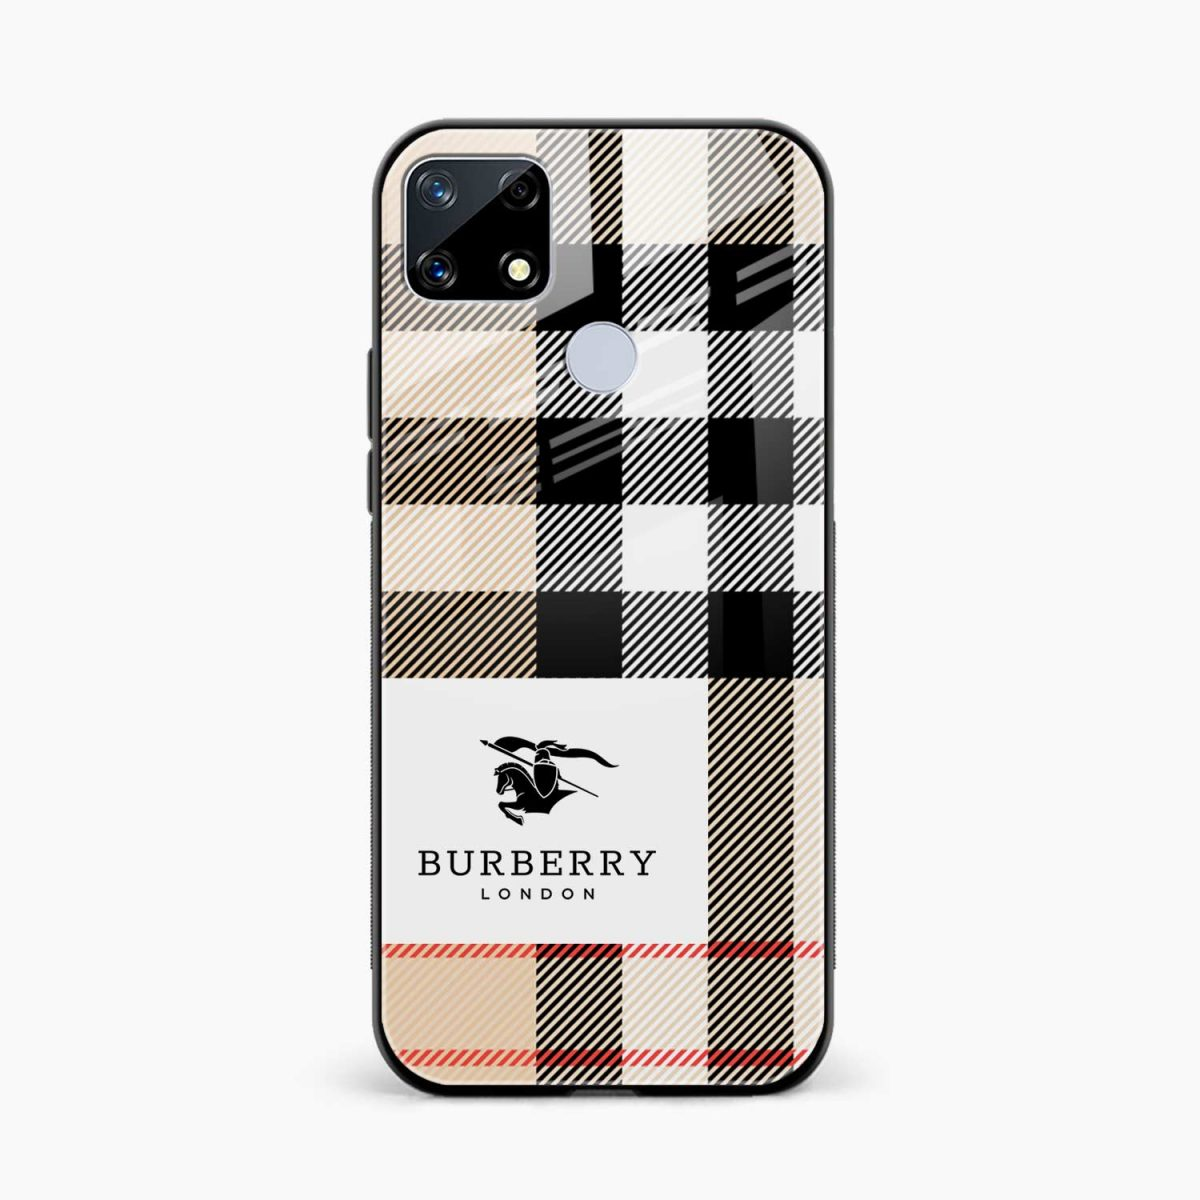 burberry cross lines pattern front view realme narzo 20 back cover